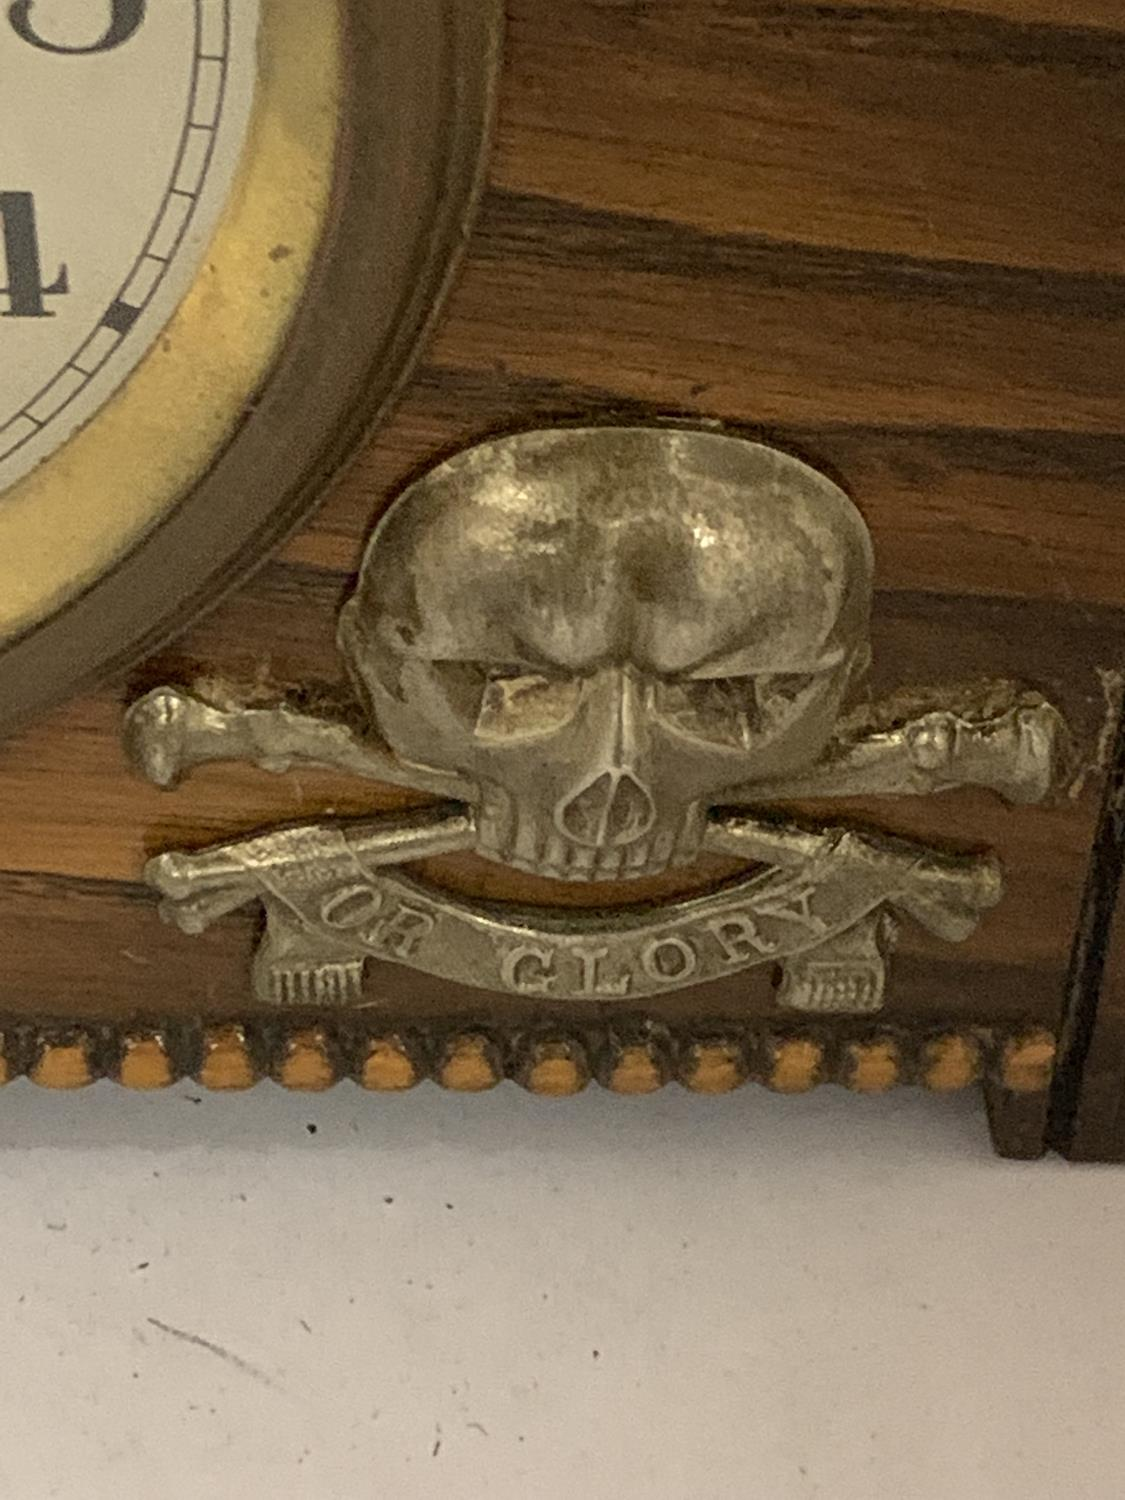 AN EIGHT DAY MANTLE CLOCK DECORATED WITH A DEATH OR GLORY MILTARY BADGE - Image 2 of 3